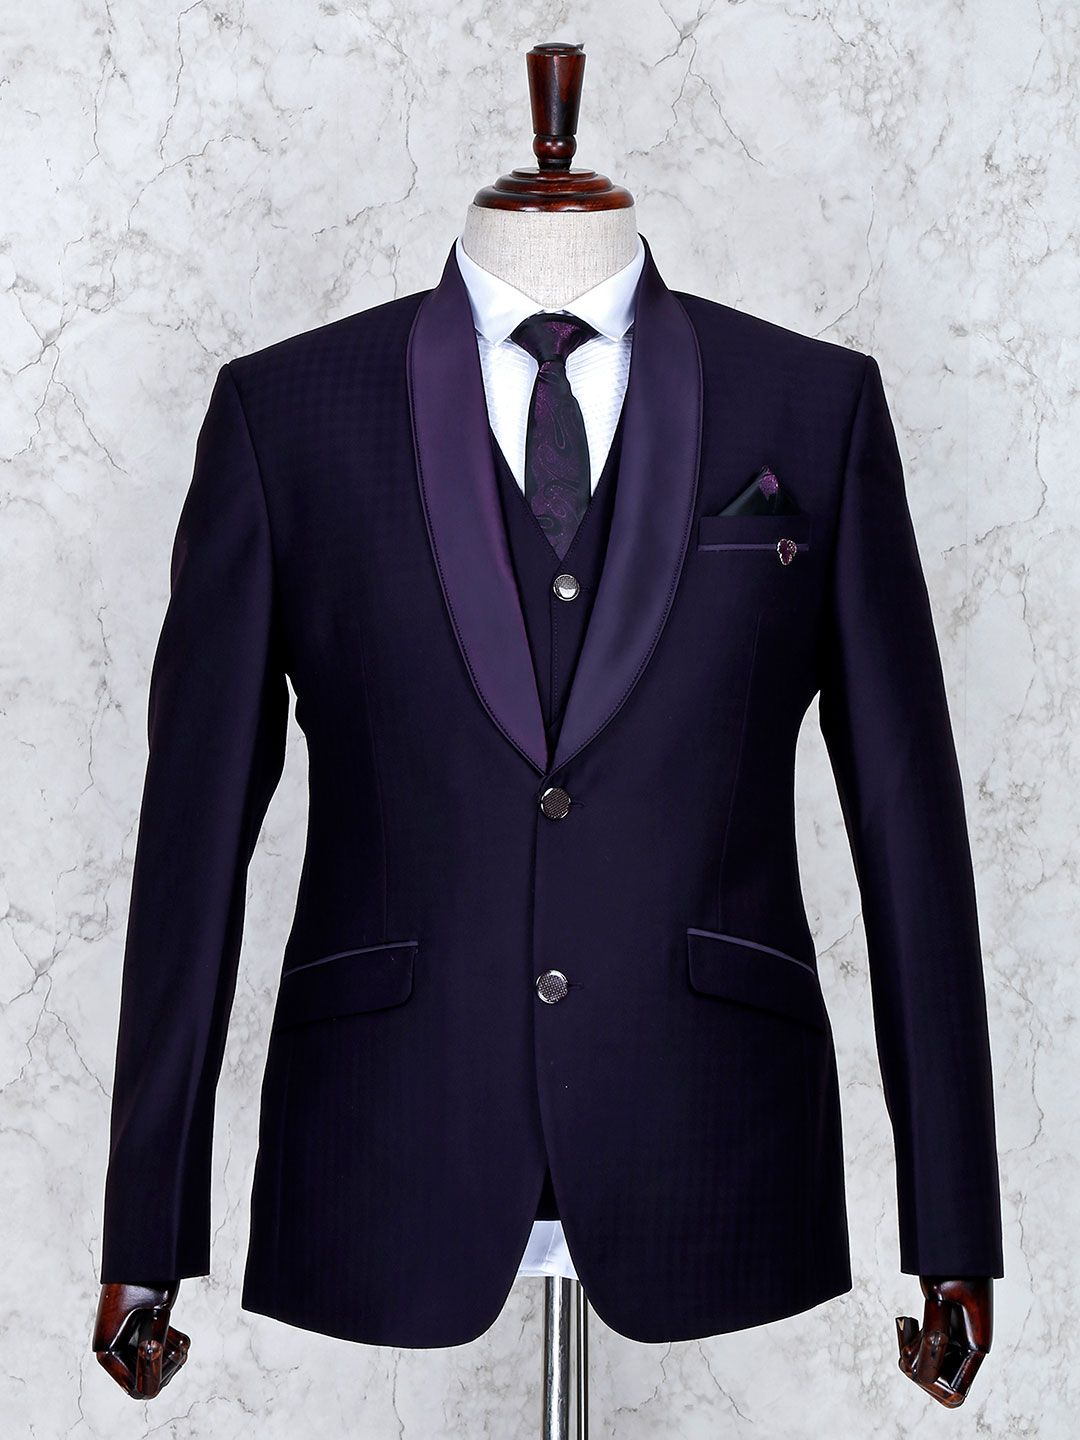 Pin On Buy Coat Suits At G3 Fashion